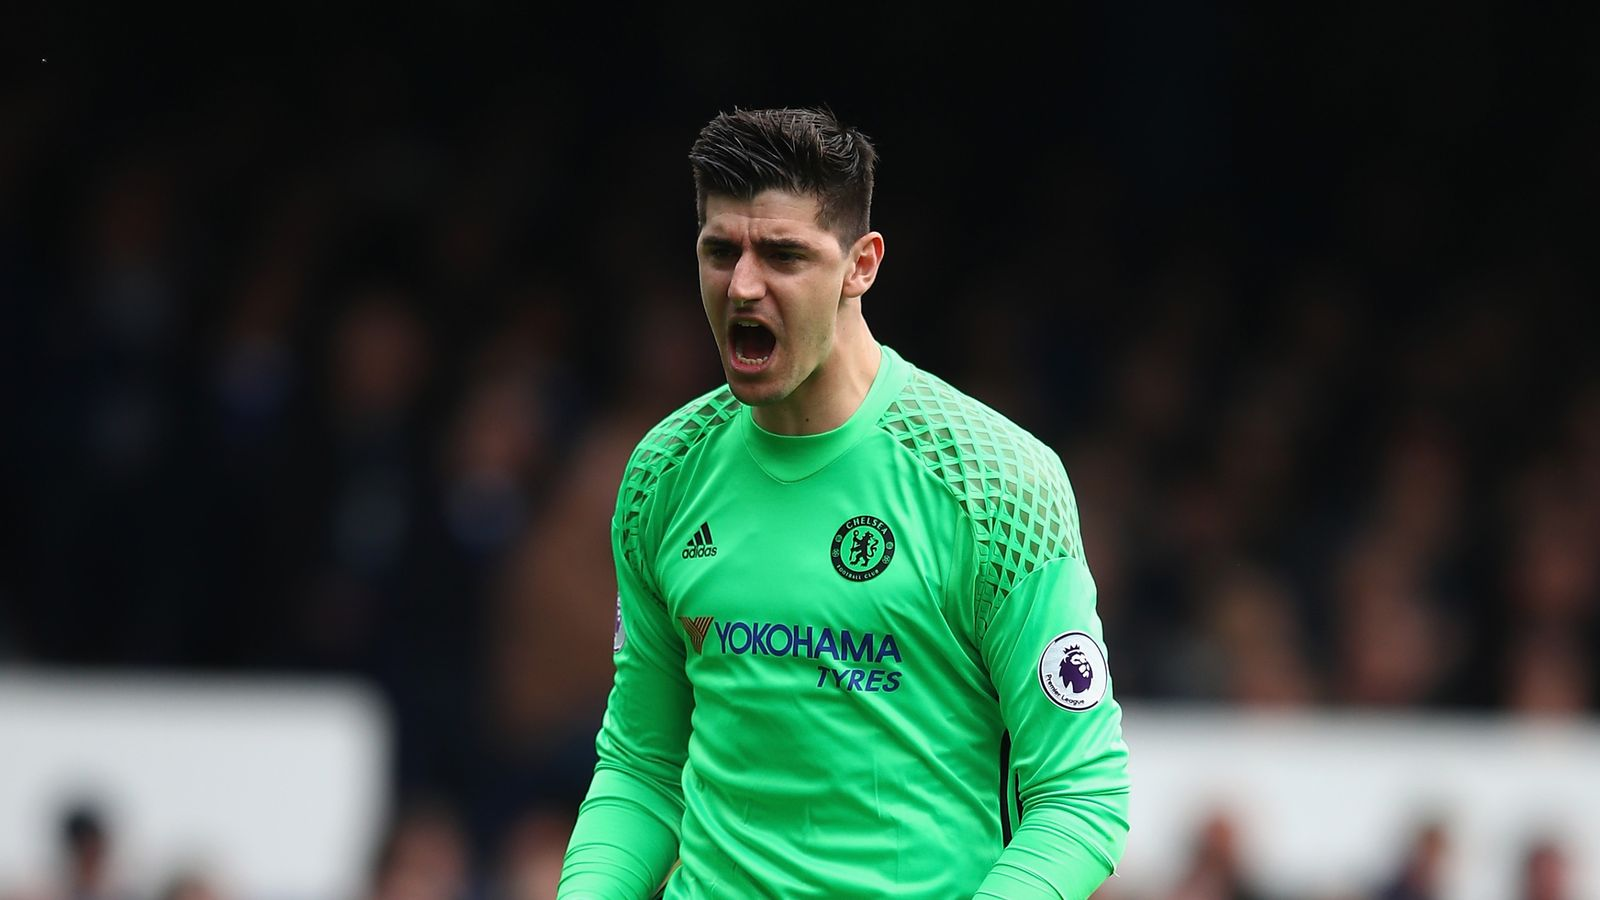 Thibaut Courtois says Chelsea clash against Man Utd a must win game